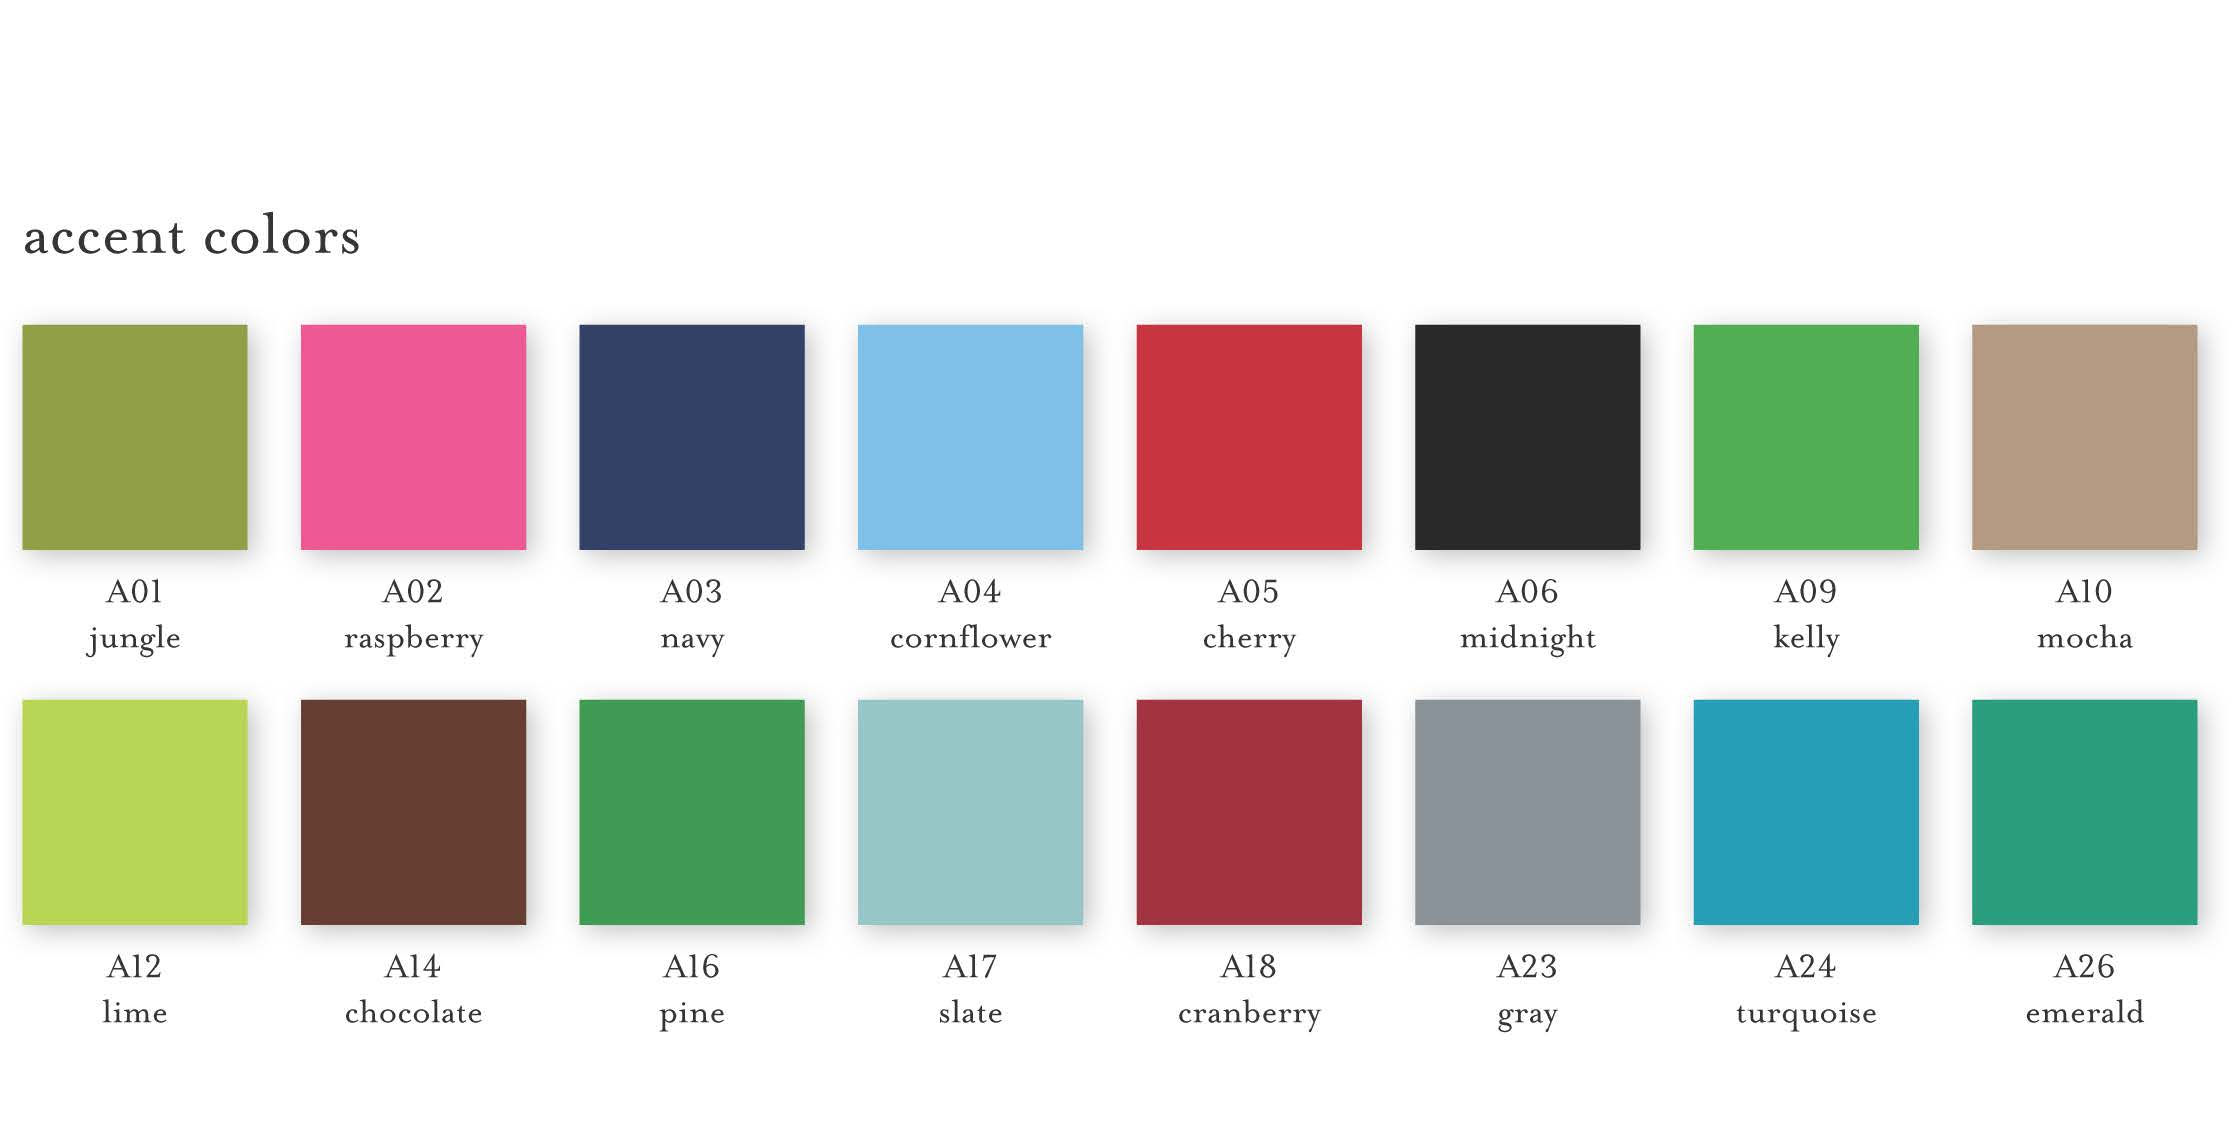 Holiday Accent colors